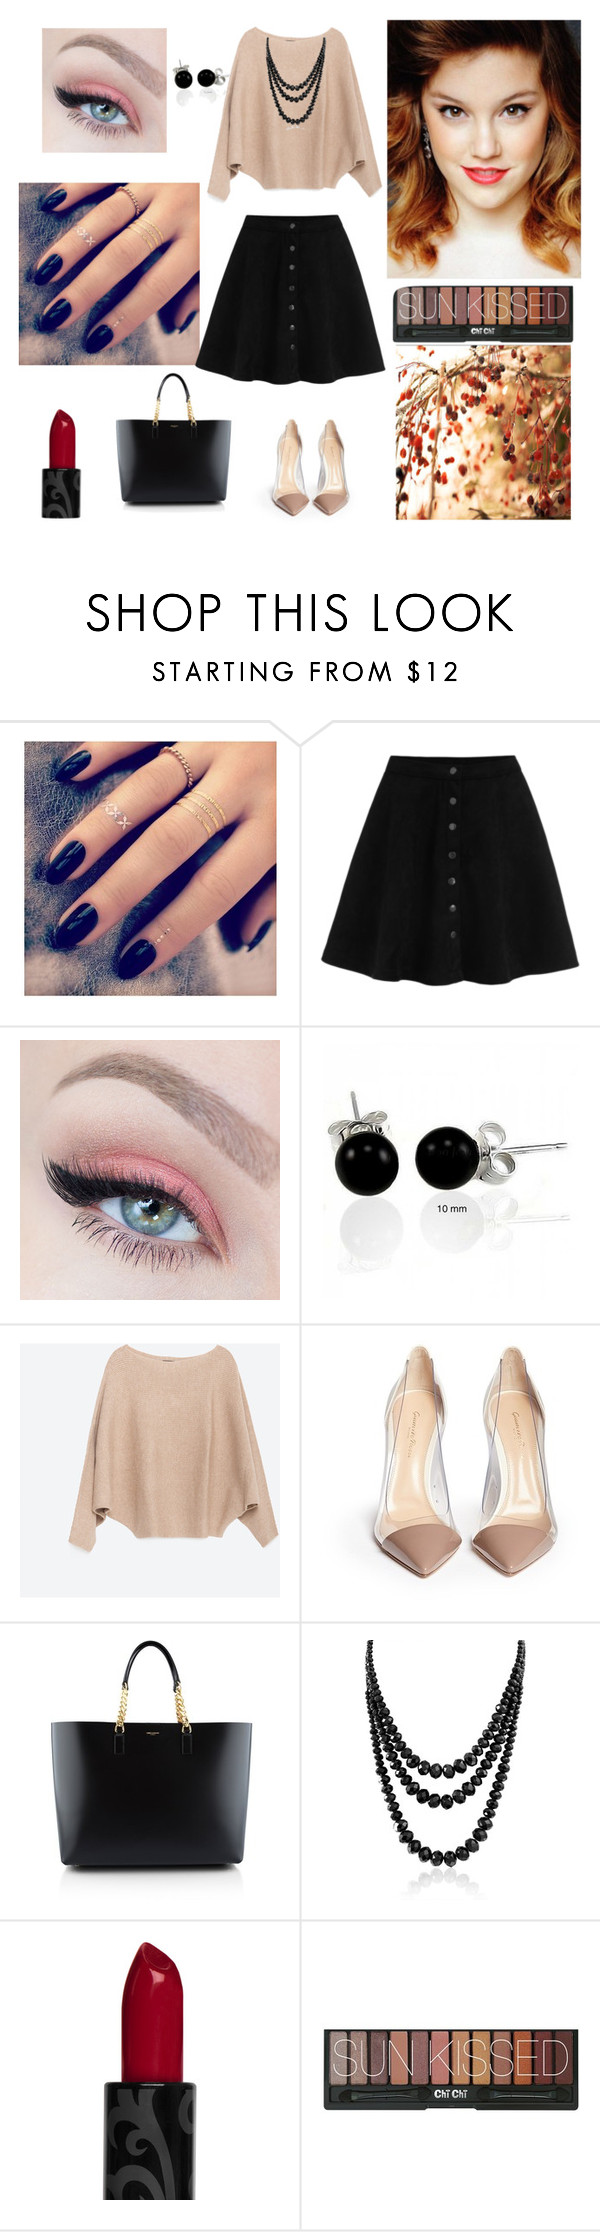 """FOR GIRL"" by jack55-593 ❤ liked on Polyvore featuring beauty, Lottie, Bling Jewelry, Zara, Gianvito Rossi and Yves Saint Laurent"